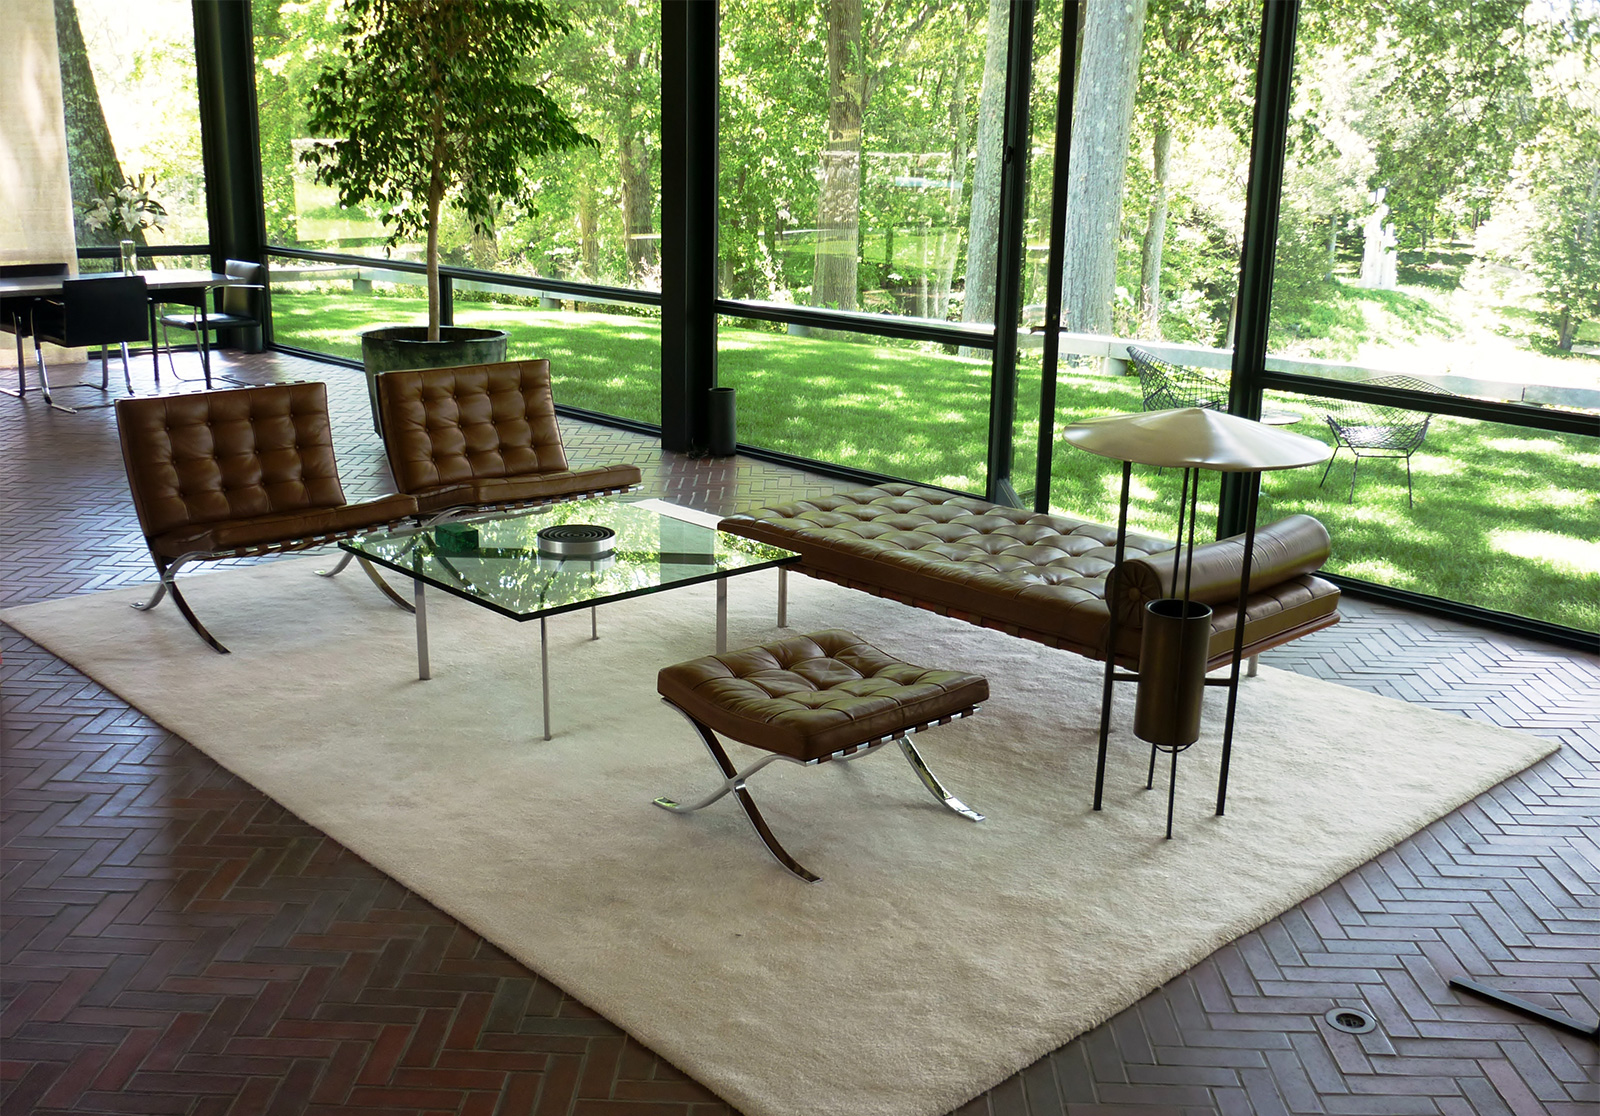 Smarten Up Johnson seating area mies daybed.jpg